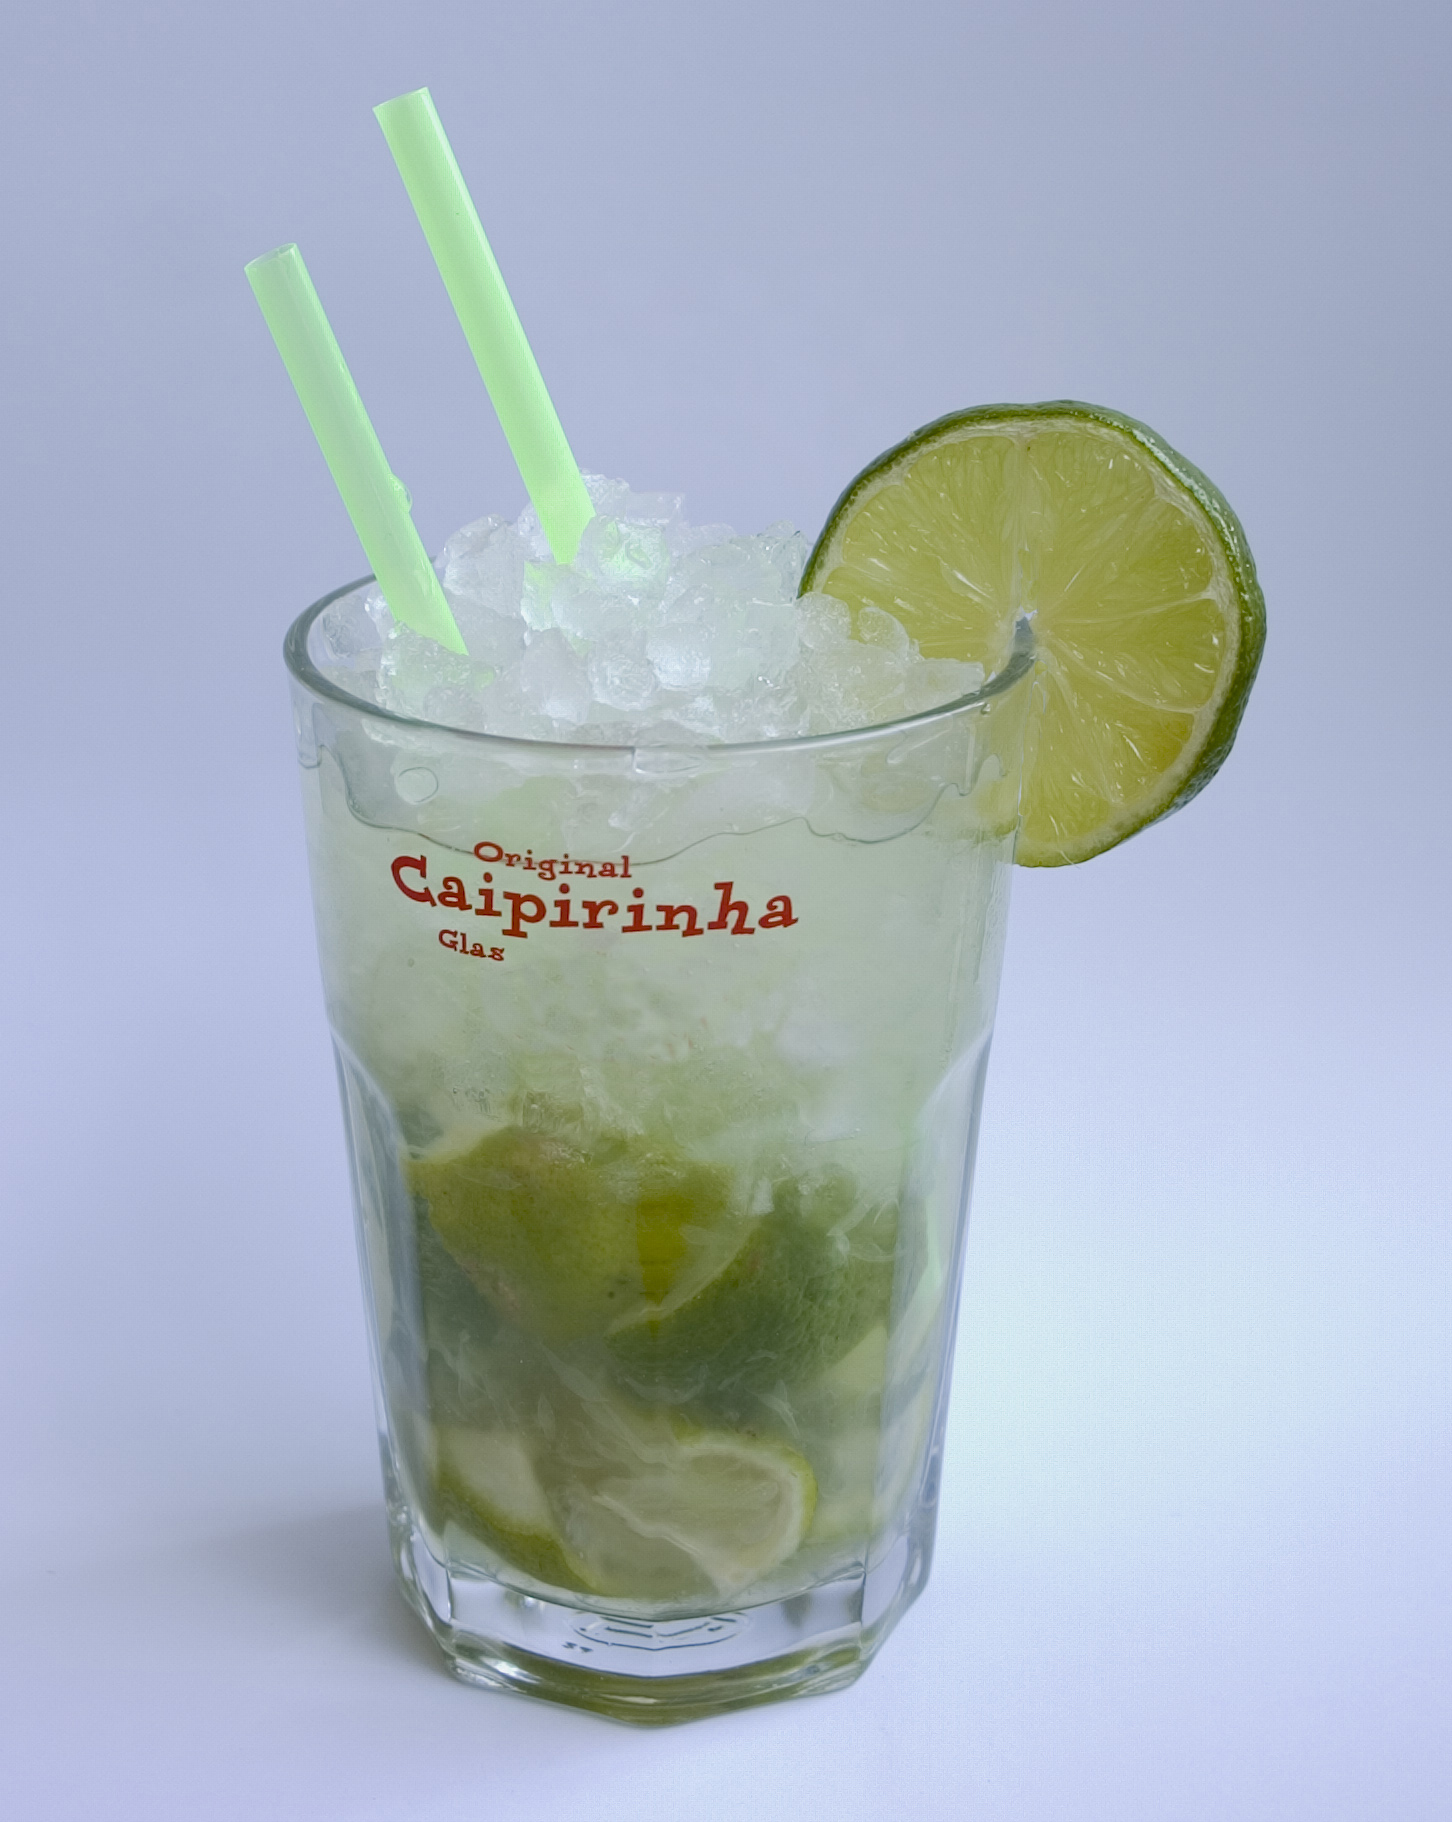 File:Cocktail Caipirinha raw.jpg - Wikimedia Commons